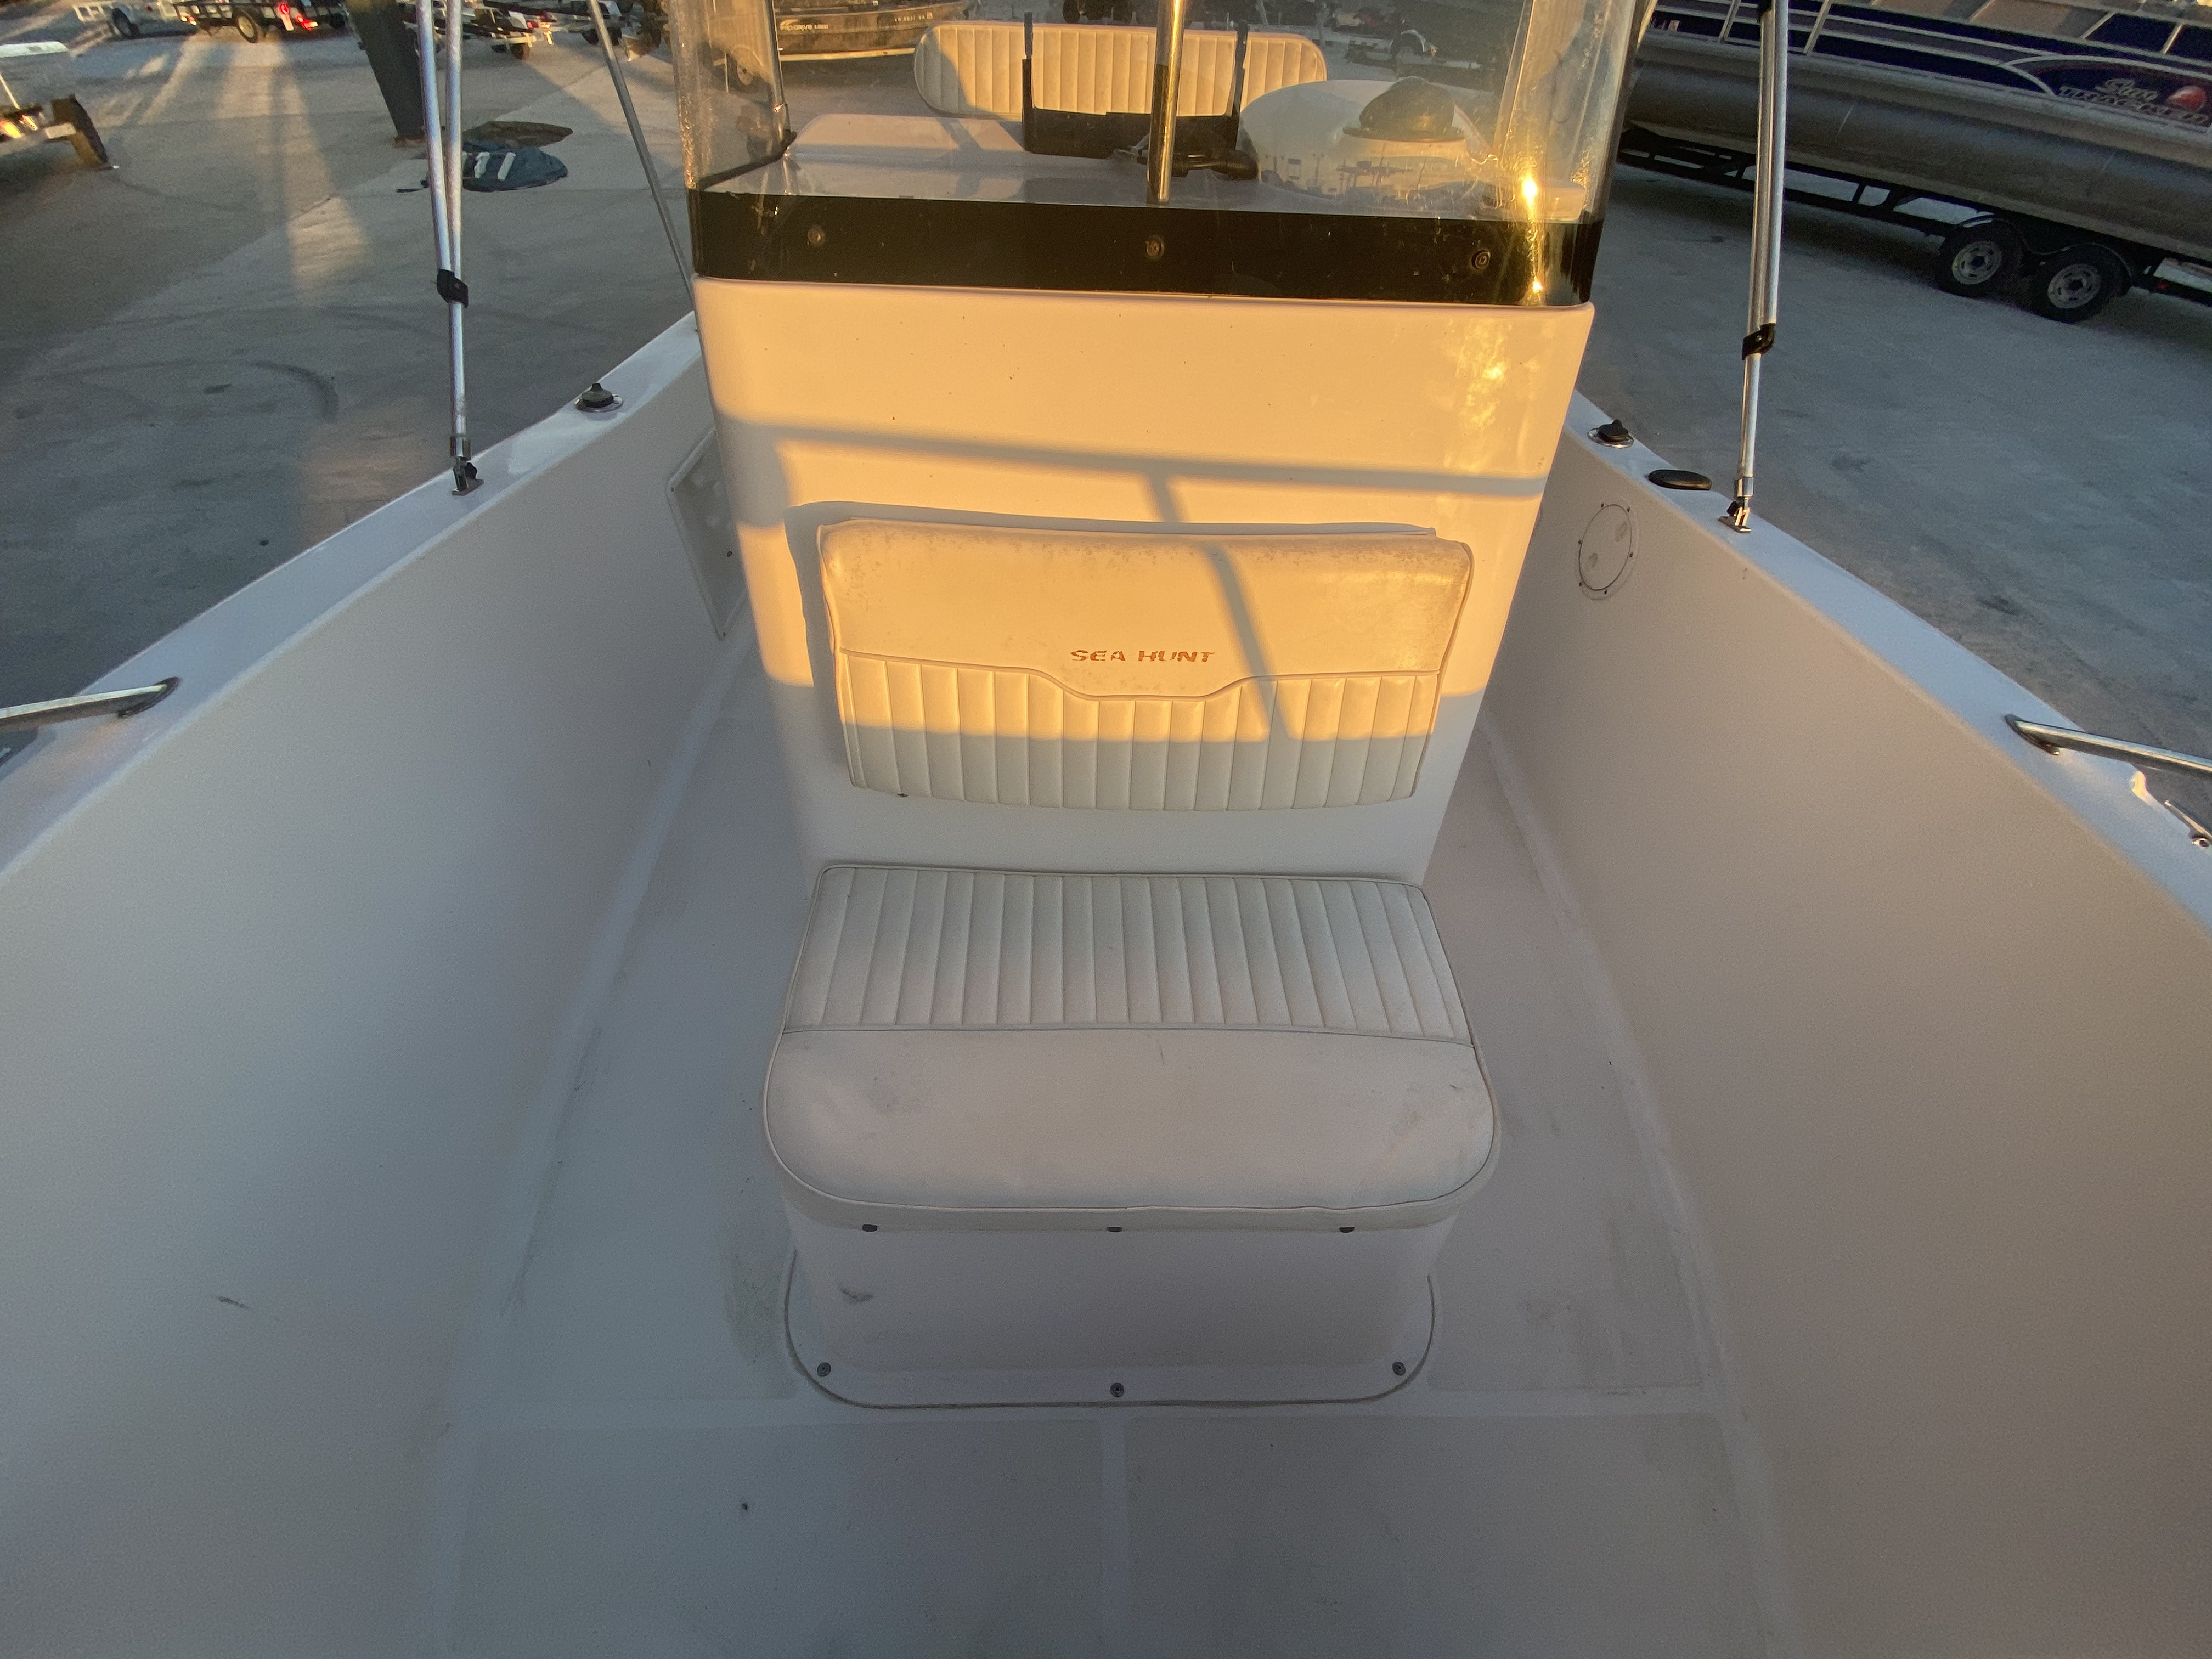 2007 Sea Hunt boat for sale, model of the boat is 207 Triton & Image # 25 of 28